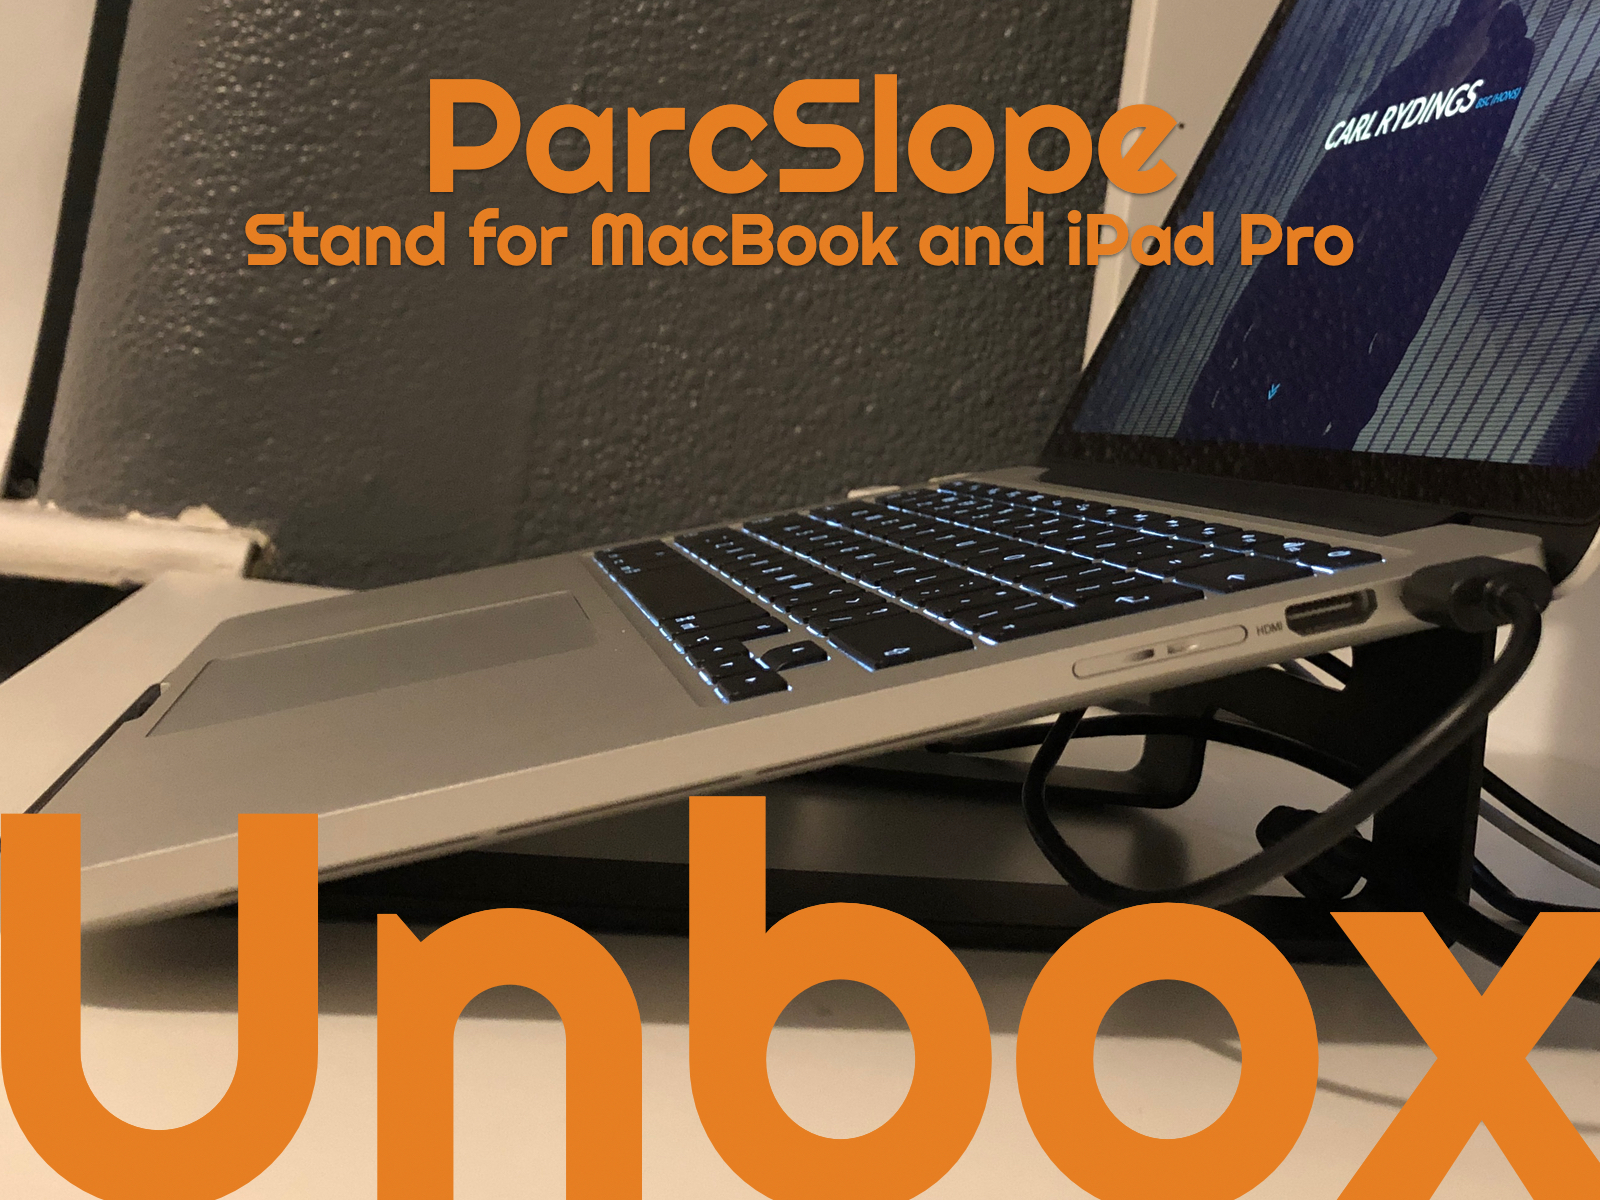 ParcSlope stand for MacBook and iPad Pro from Twelve South